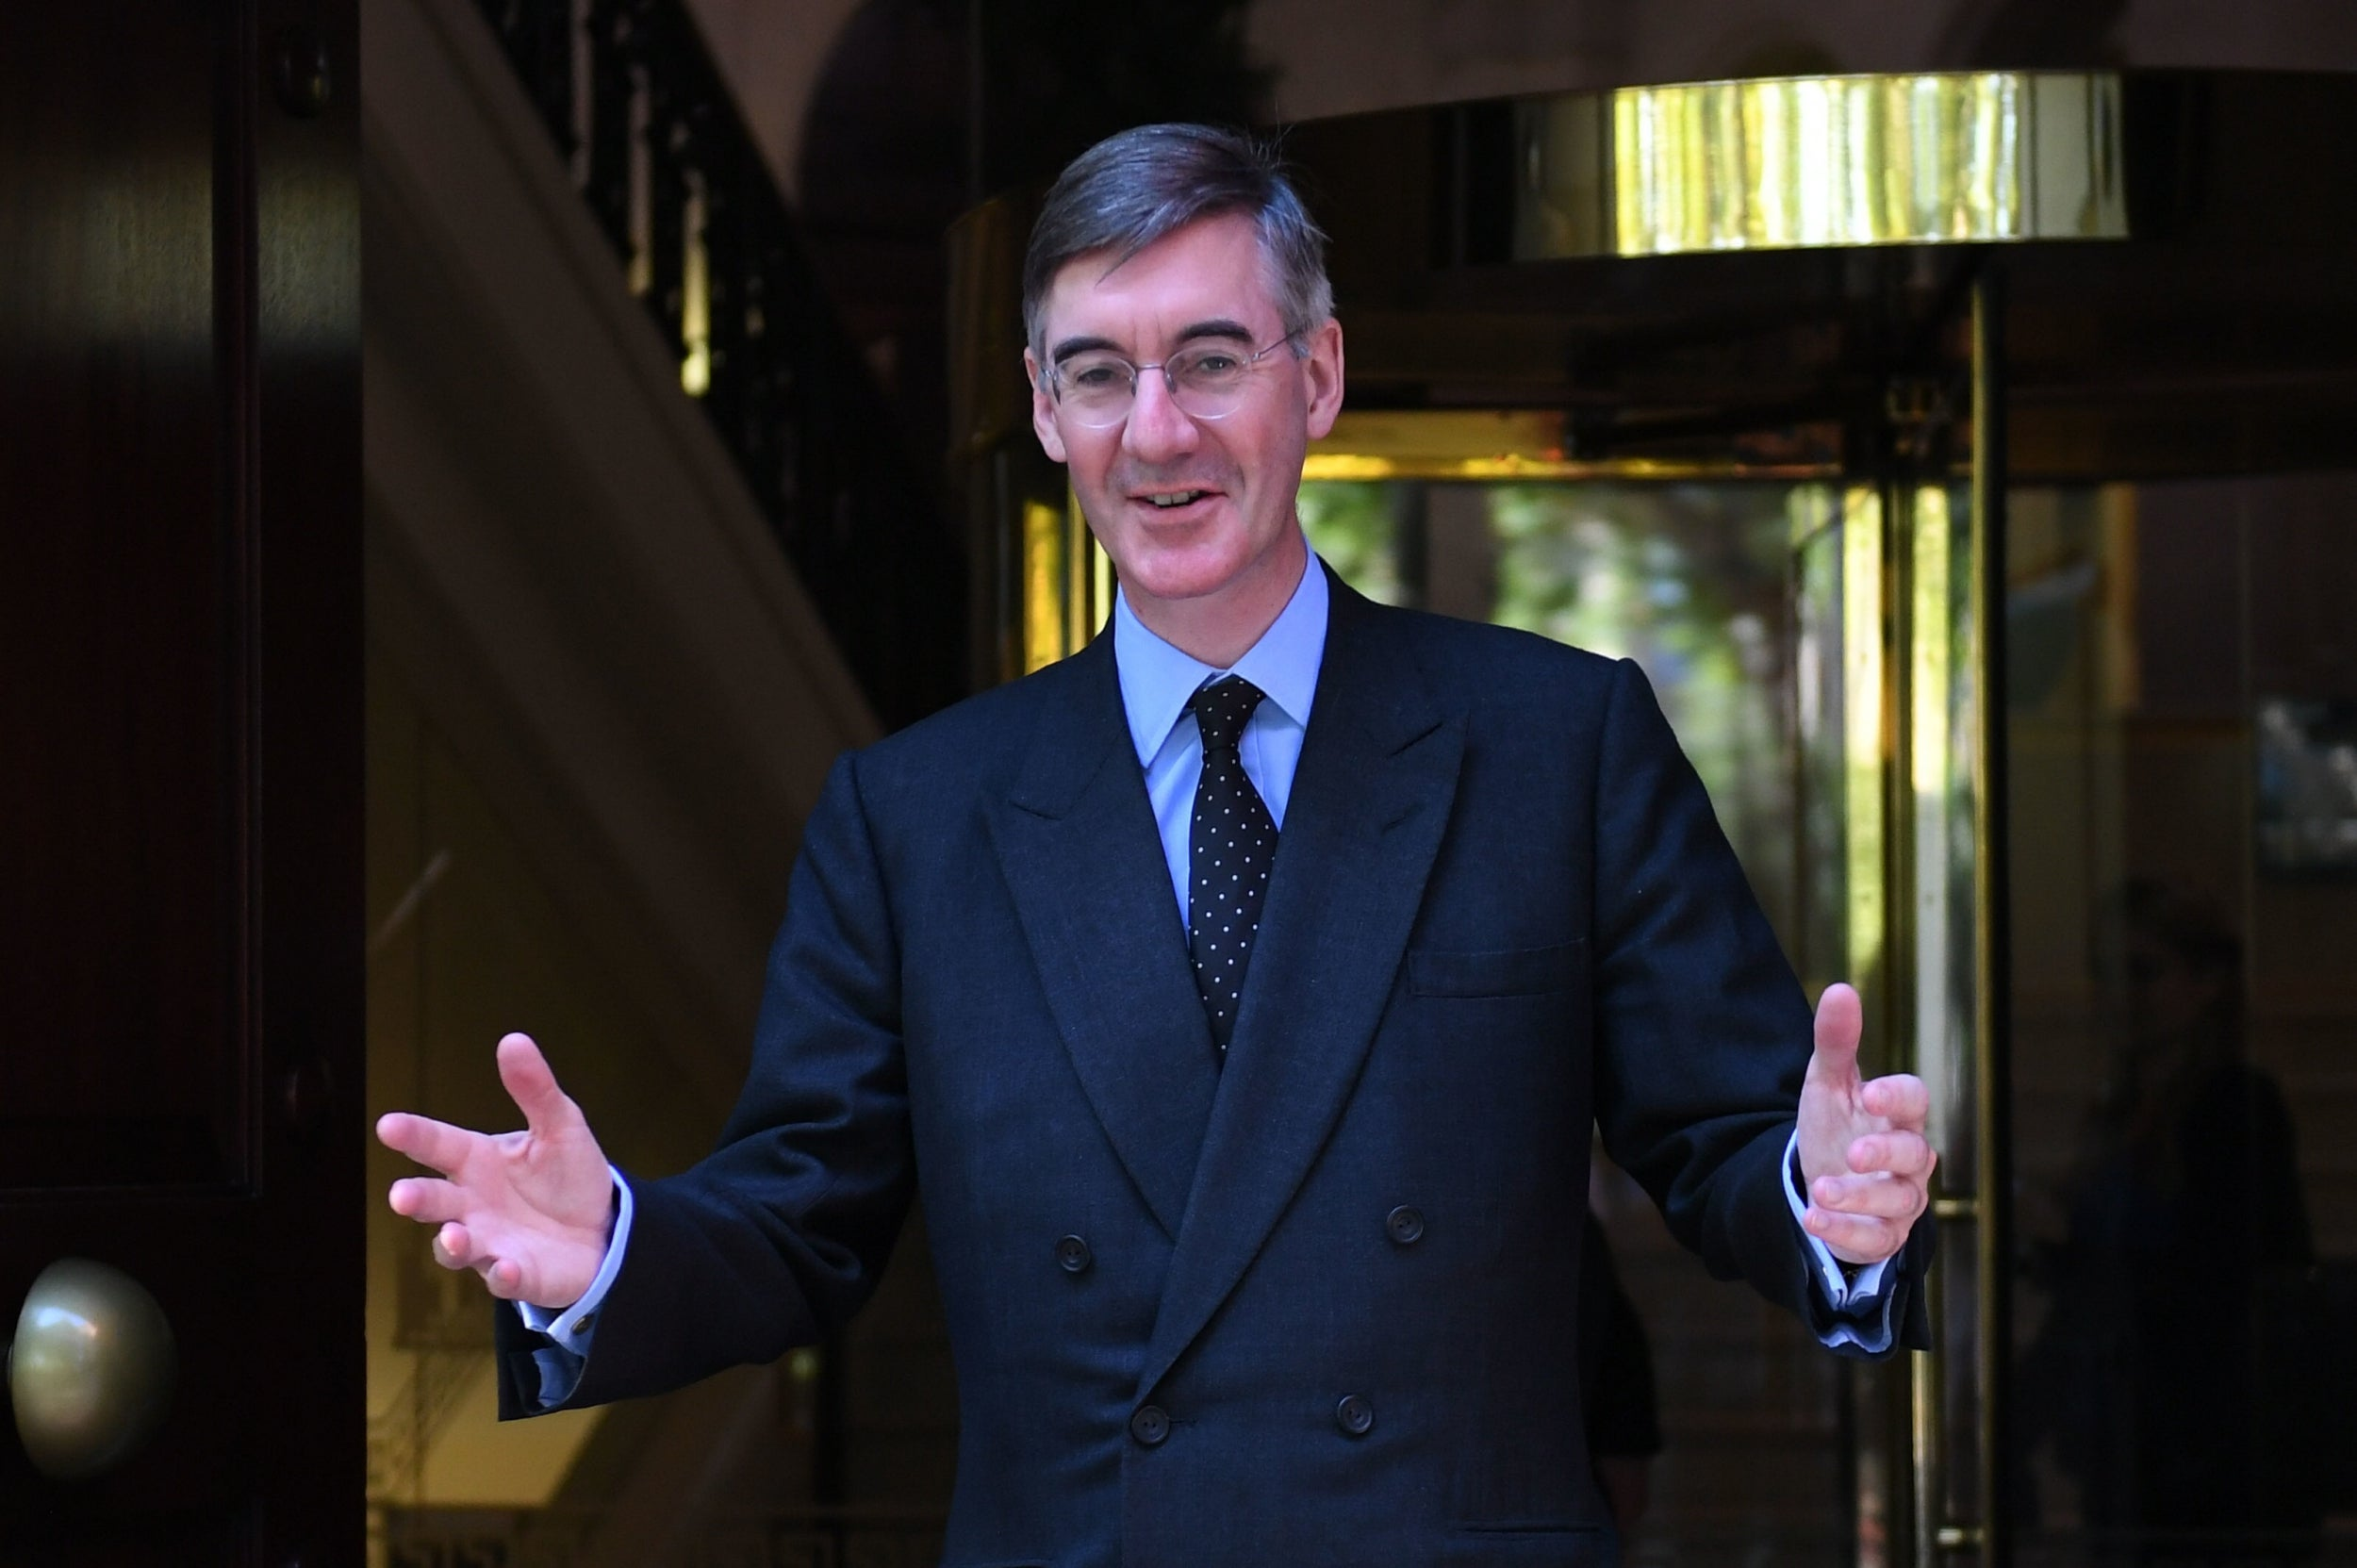 'Absolutely disgusting': Jacob Rees-Mogg condemned for likening doctor to disgraced anti-vaxxer for warning of deaths after no-deal Brexit